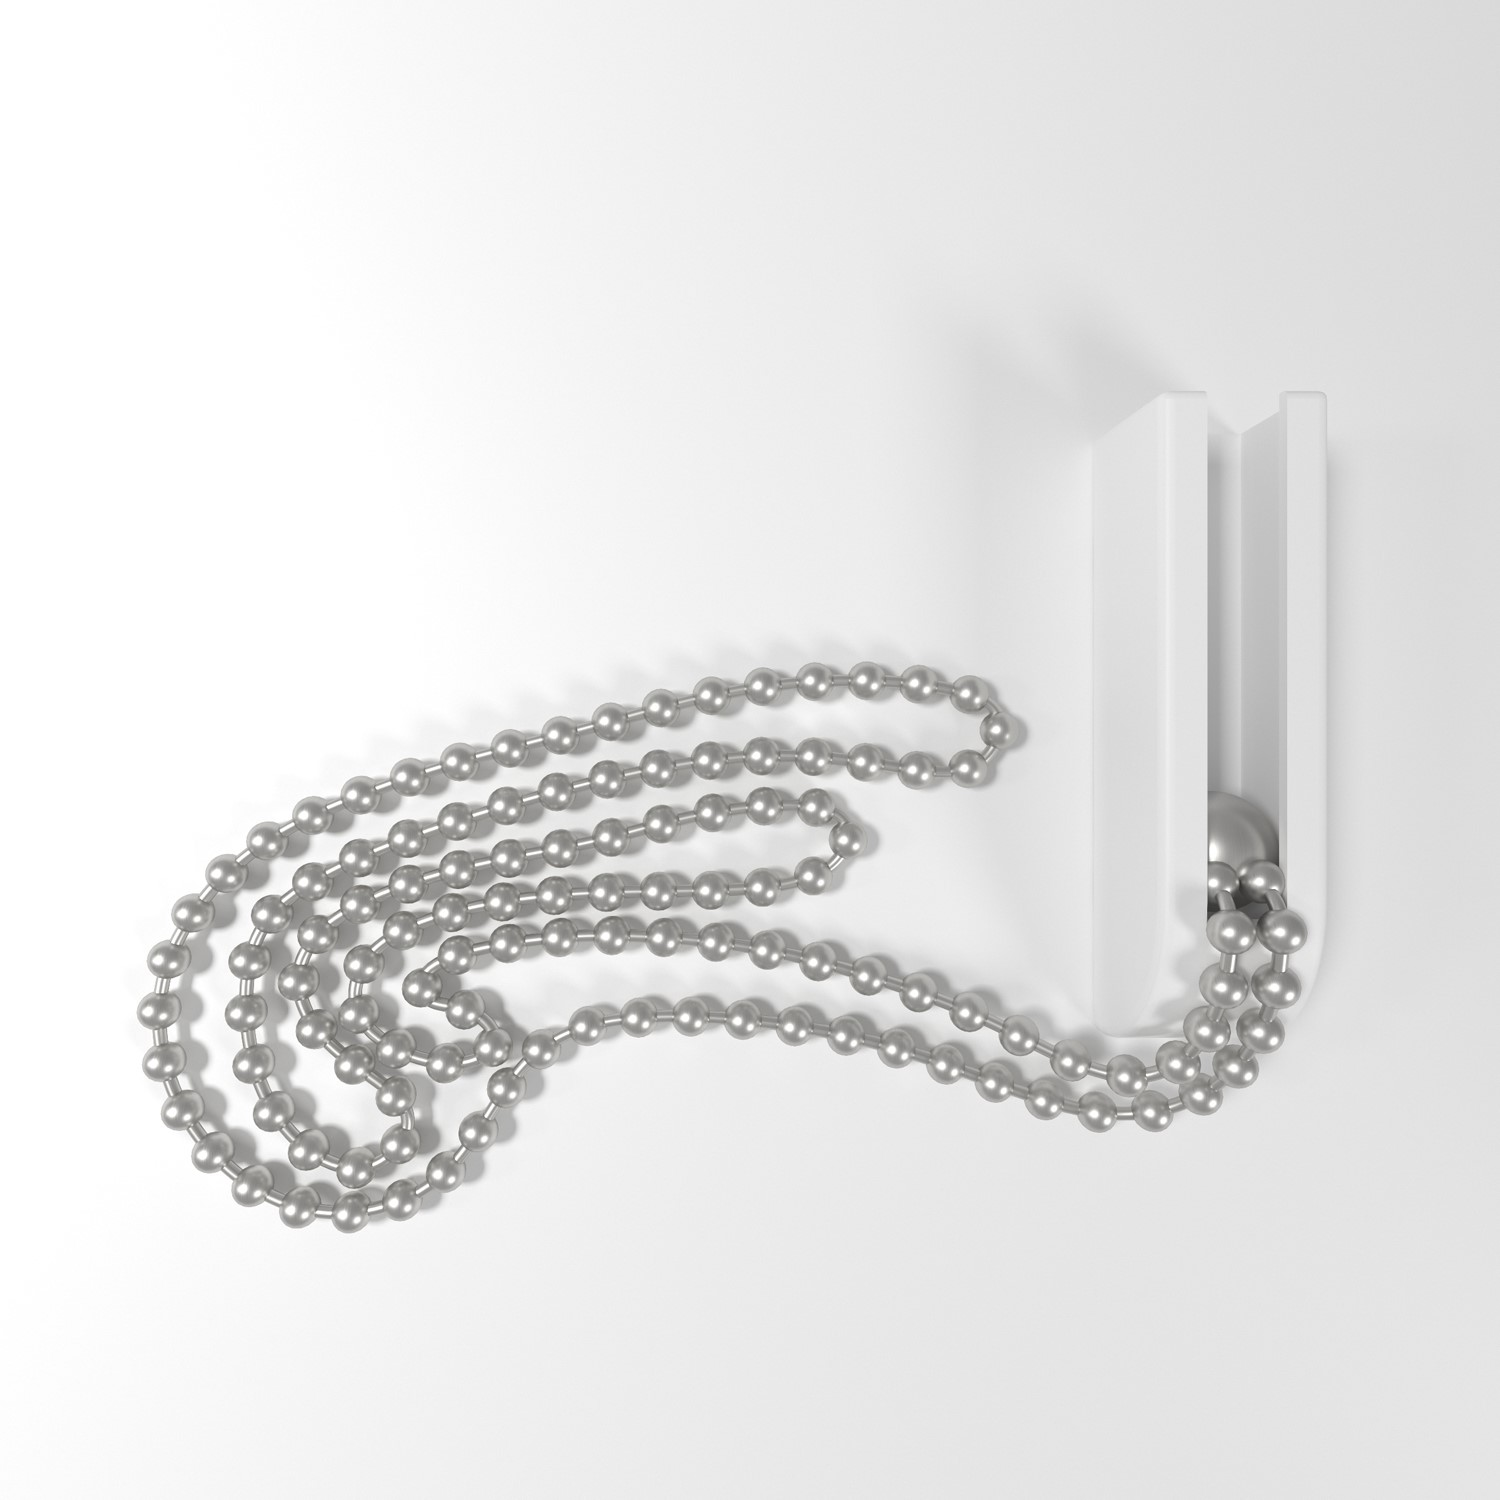 Cubicle curtain beaded nickel plated chain